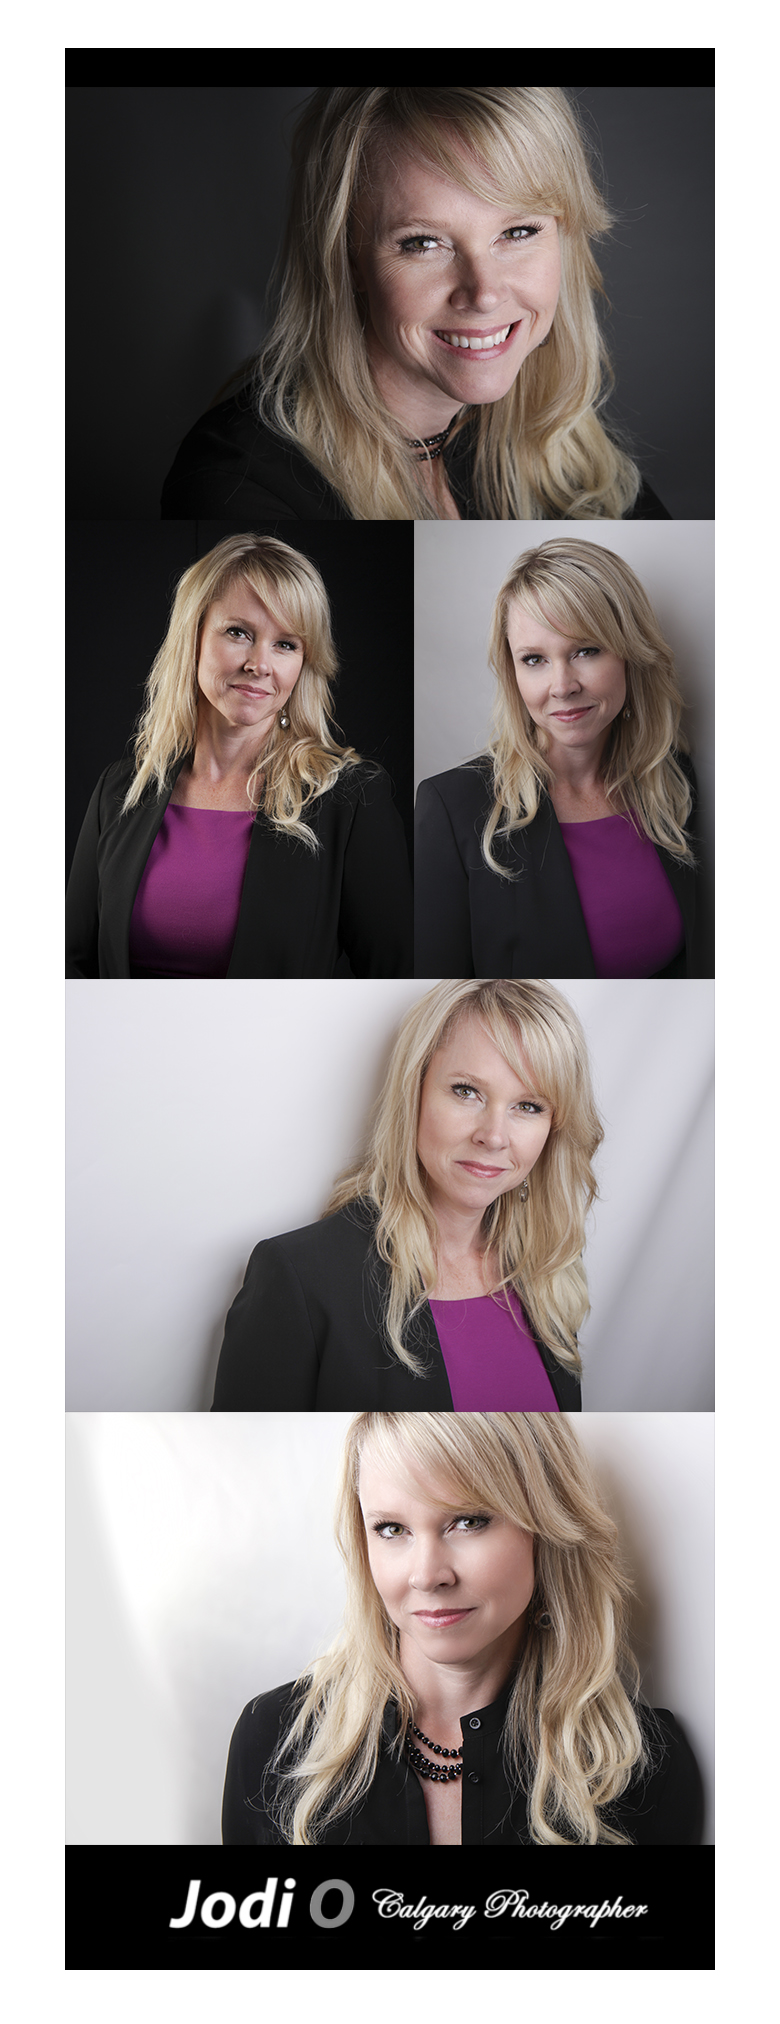 Calgary-Business-Headshots